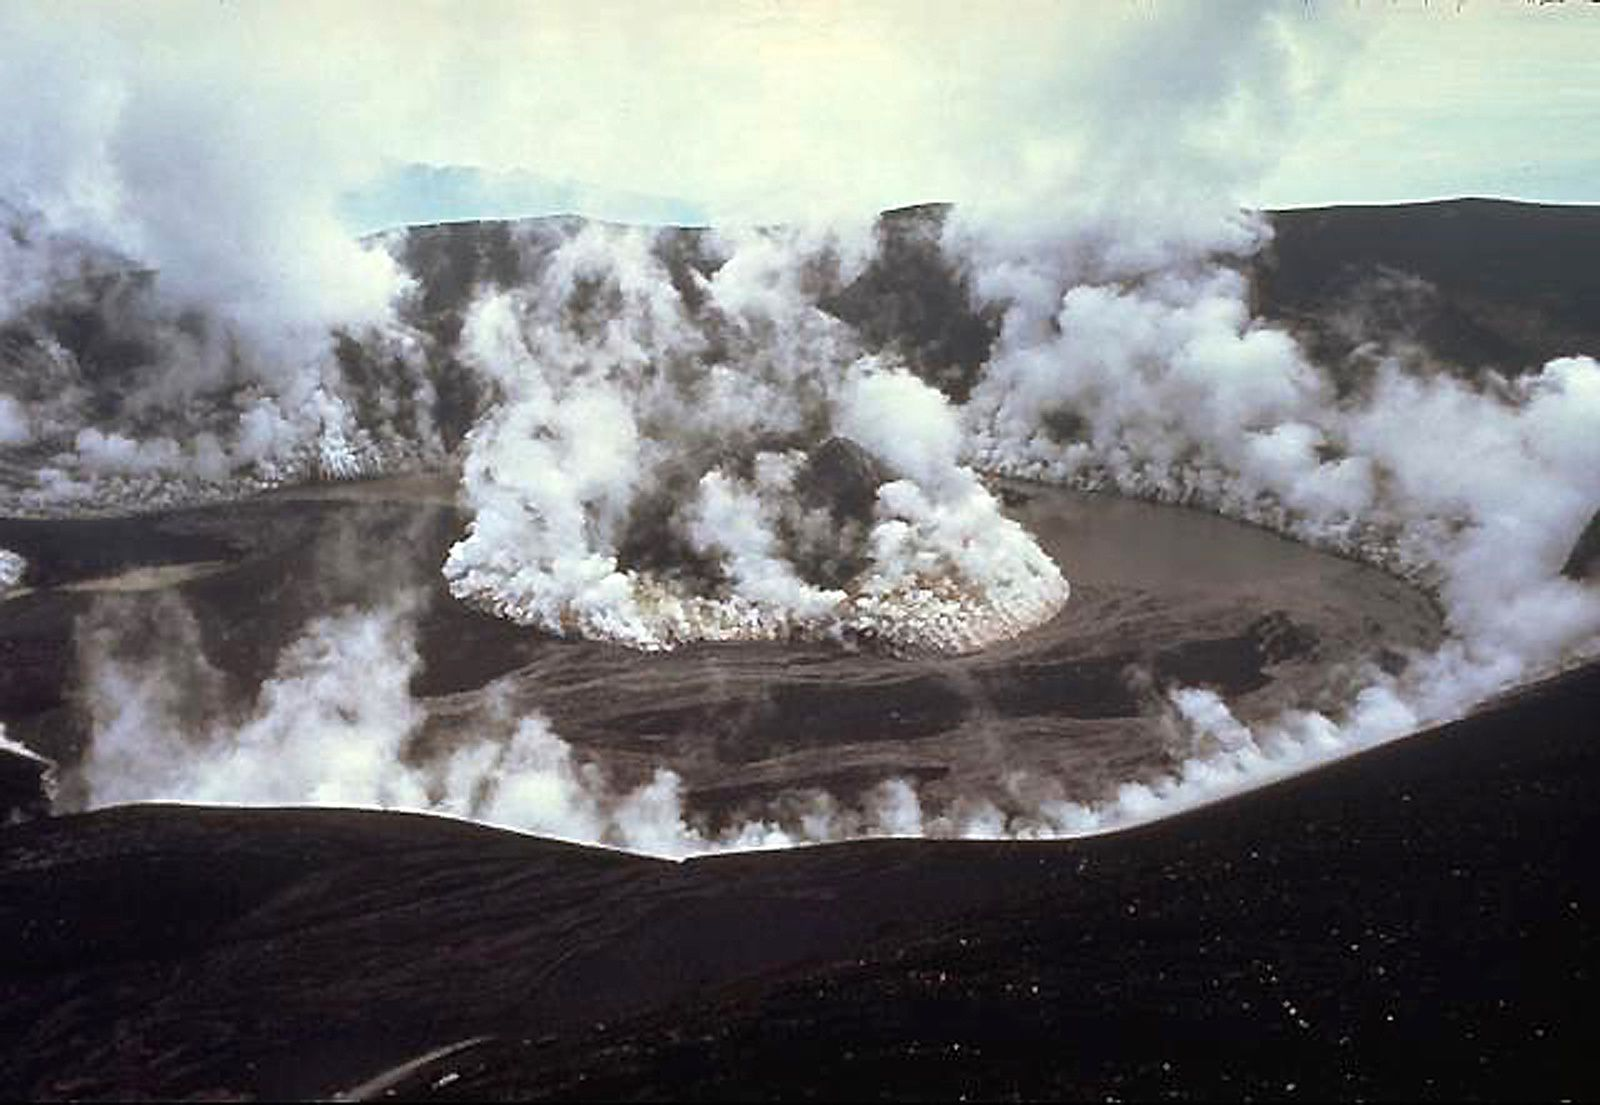 Galunggung 02.05.1983 ... one month after the end of the eruption, clouds of steam escaping from the cinder cone formed at the center of the crater and the inner edges of the caldera&#x3B; lake begins to form which will engulf almost the entire cone - photo Don Peterson USGS.